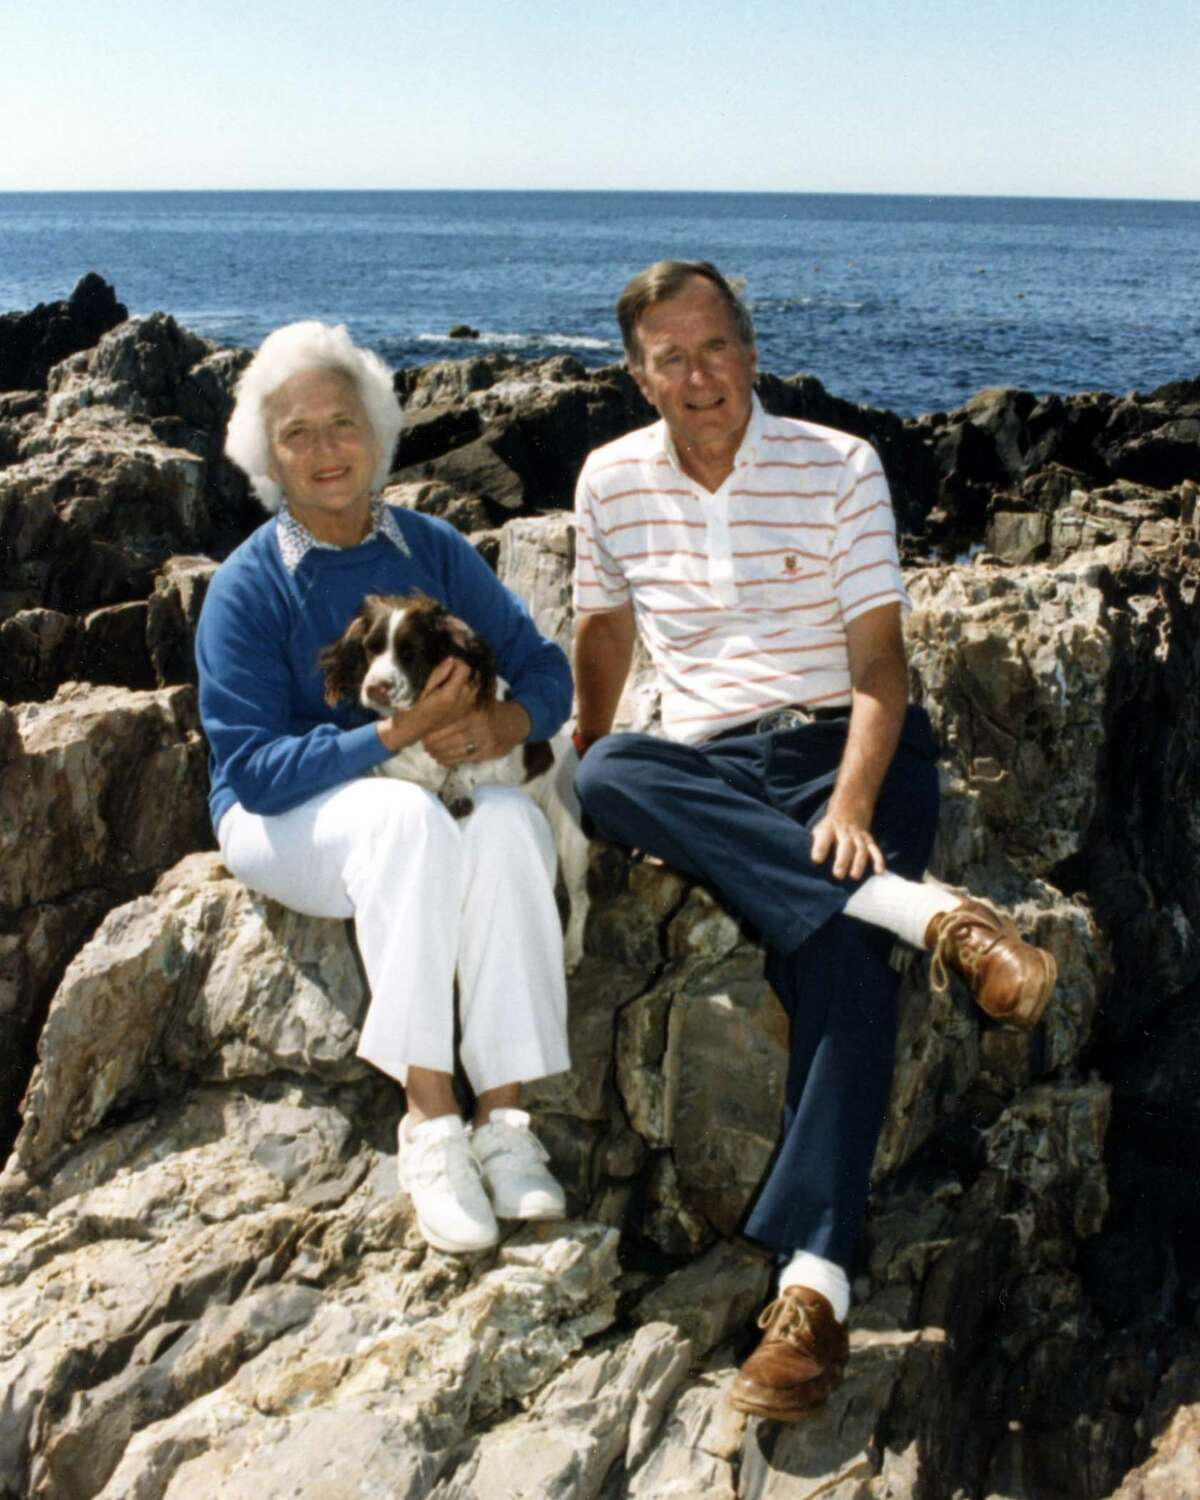 Vice President and Mrs. Bush with their dog, Millie, Walker's Point, Kennebunkport, ME, 27 Jul 87.